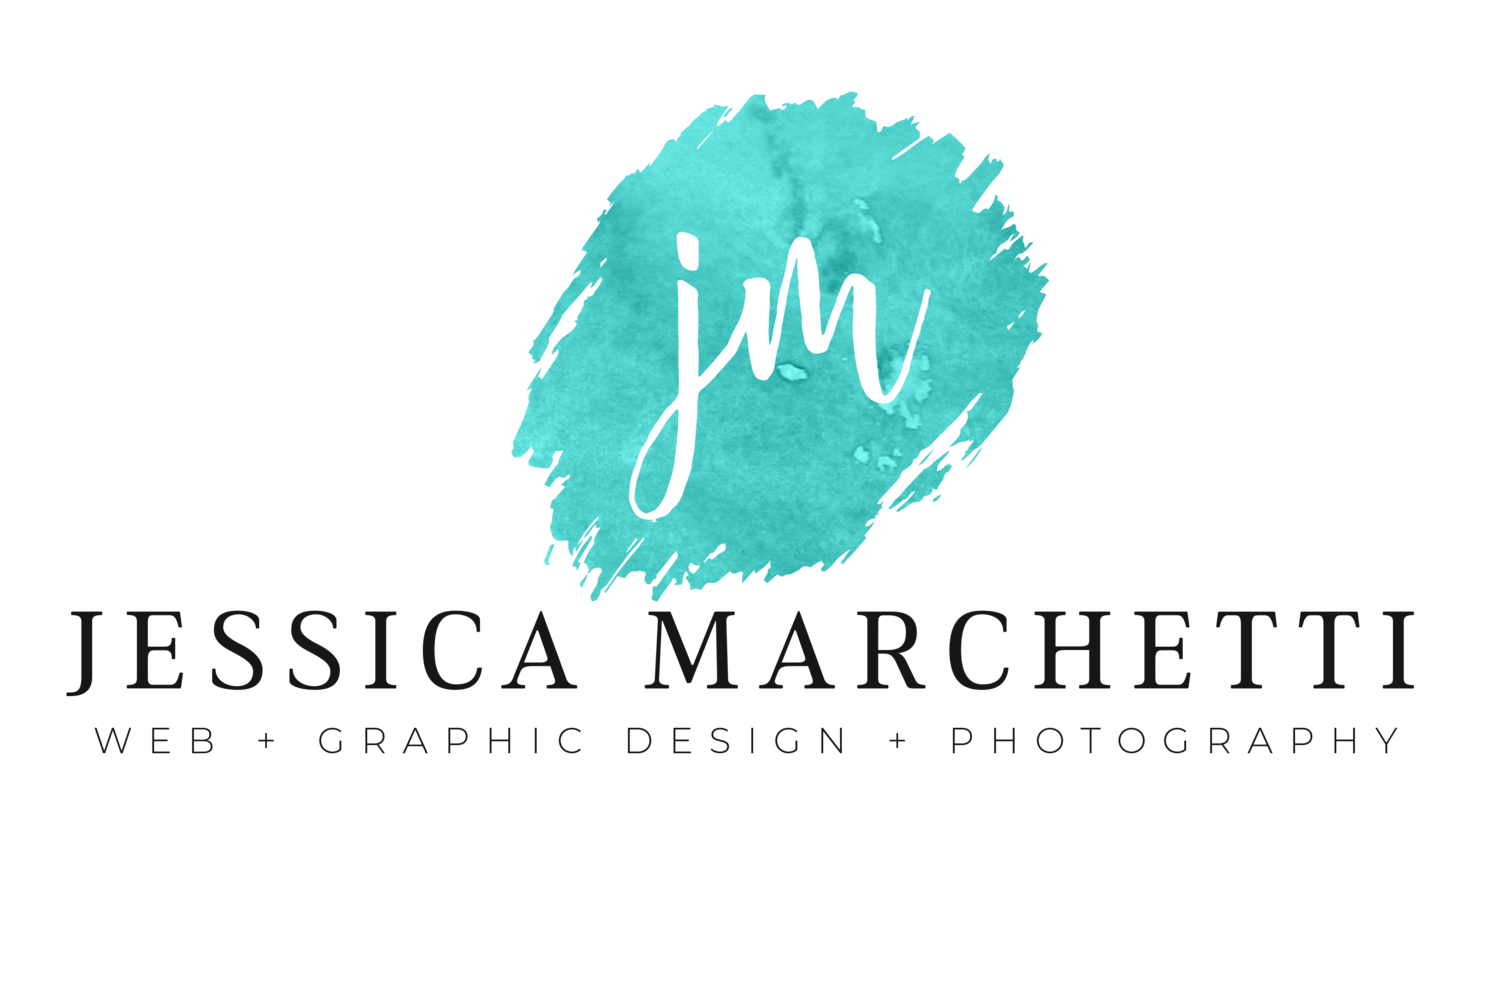 Jessica Marchetti Photography and Web Services